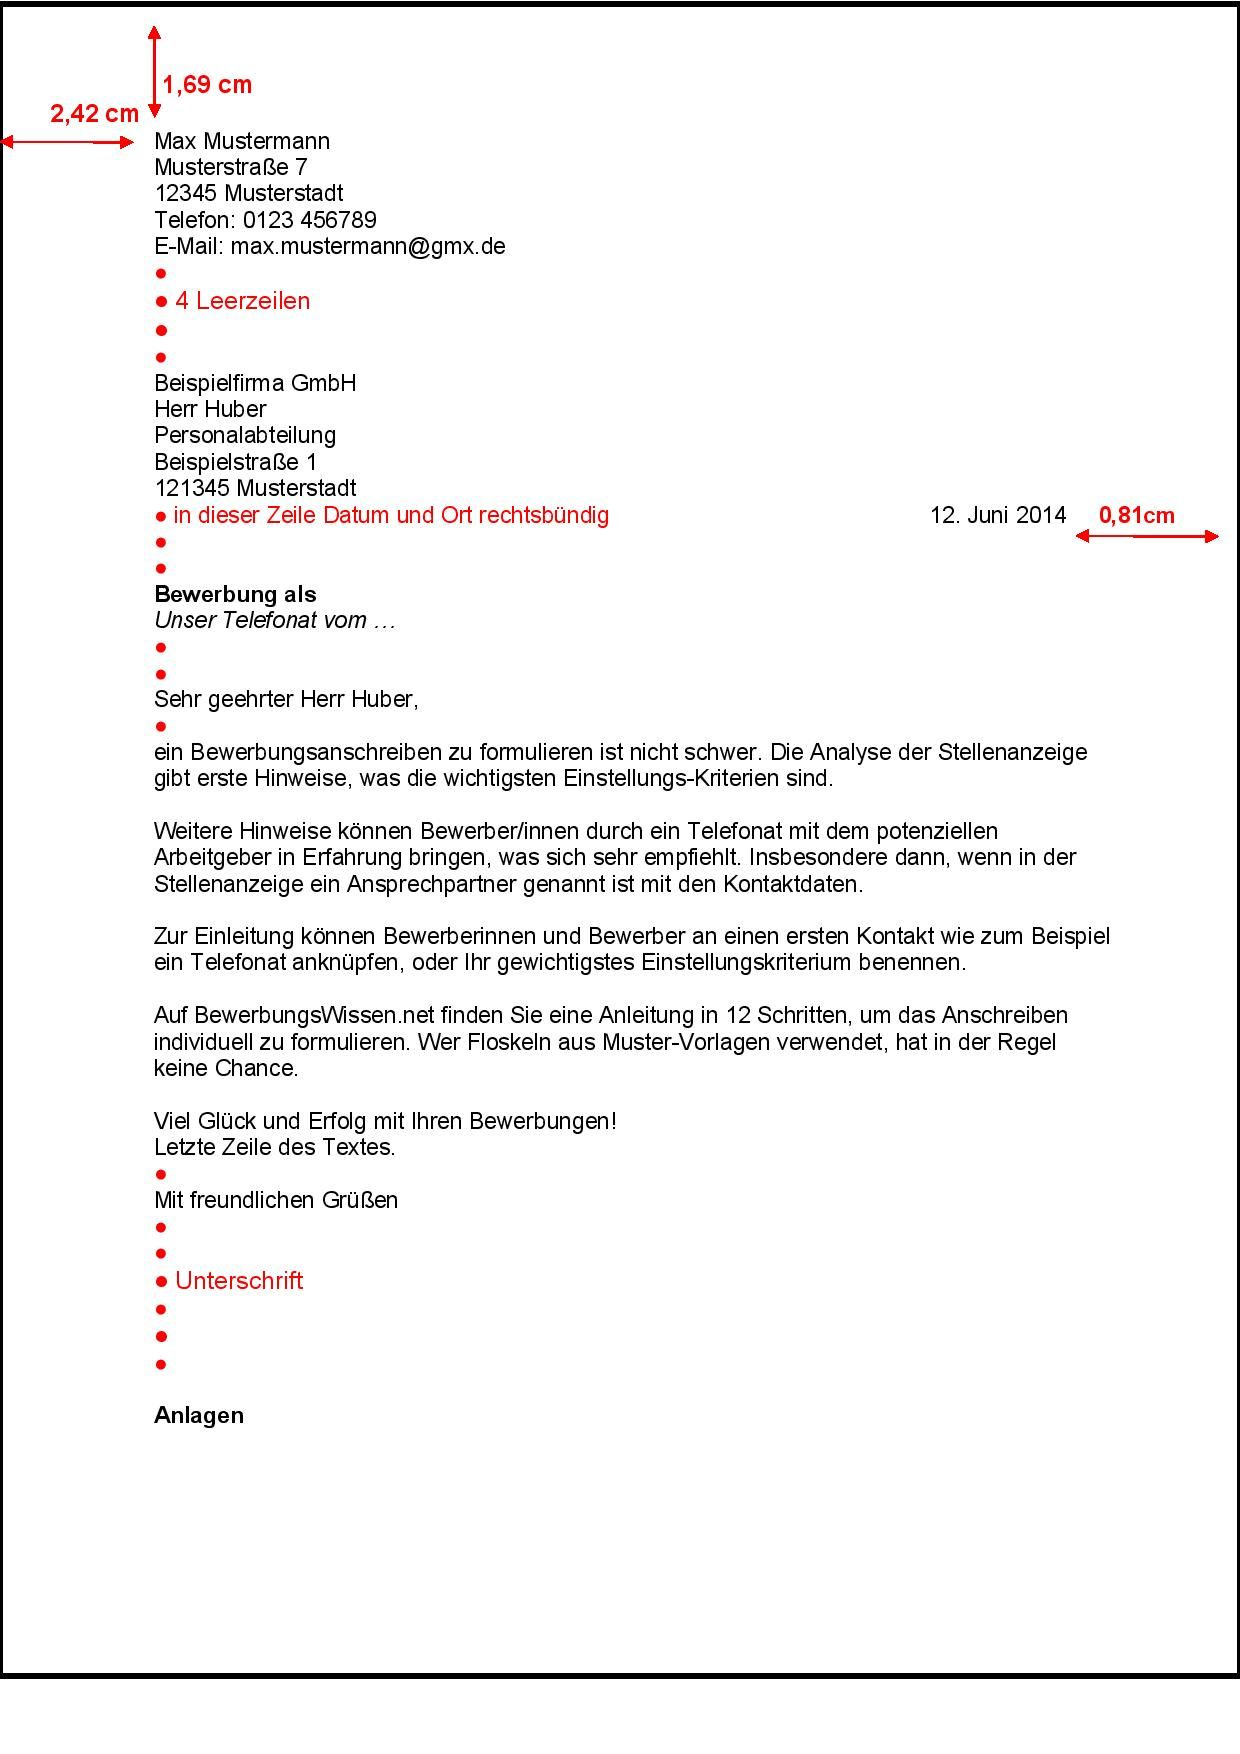 Bewerbungsanschreiben nach DIN 5008 Bewerbung - BewerbungsWissen.net  Personal Branding, Kindergarten, Application Writing